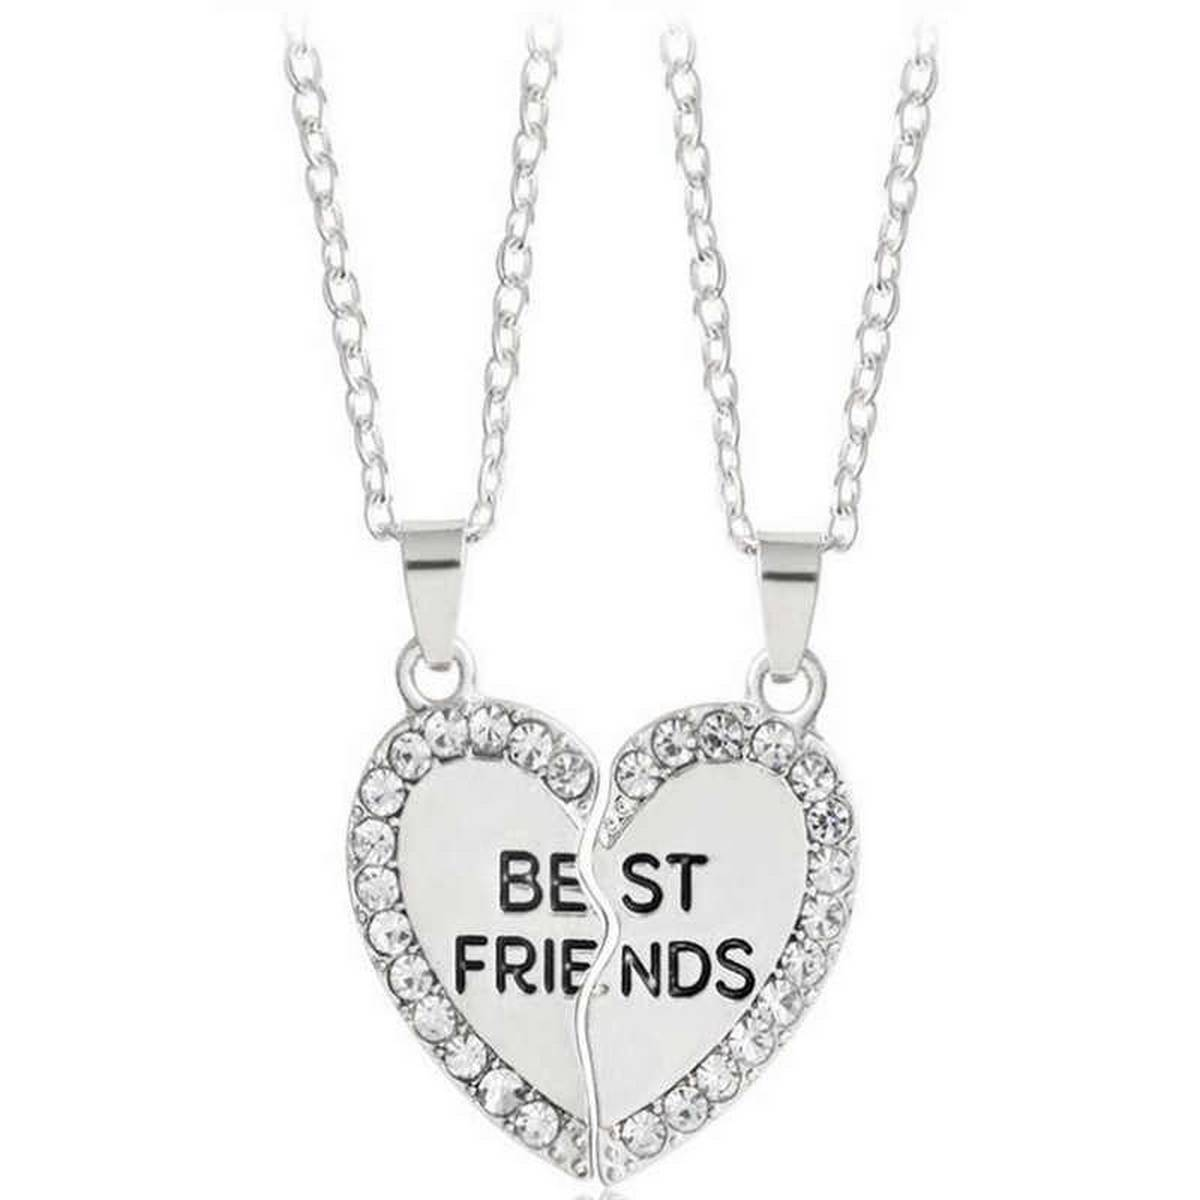 2pcs/ Set Fashion Necklace BFF Best Friends Forever Love Rings Eternity Pendant Necklaces Jewelry Gifts